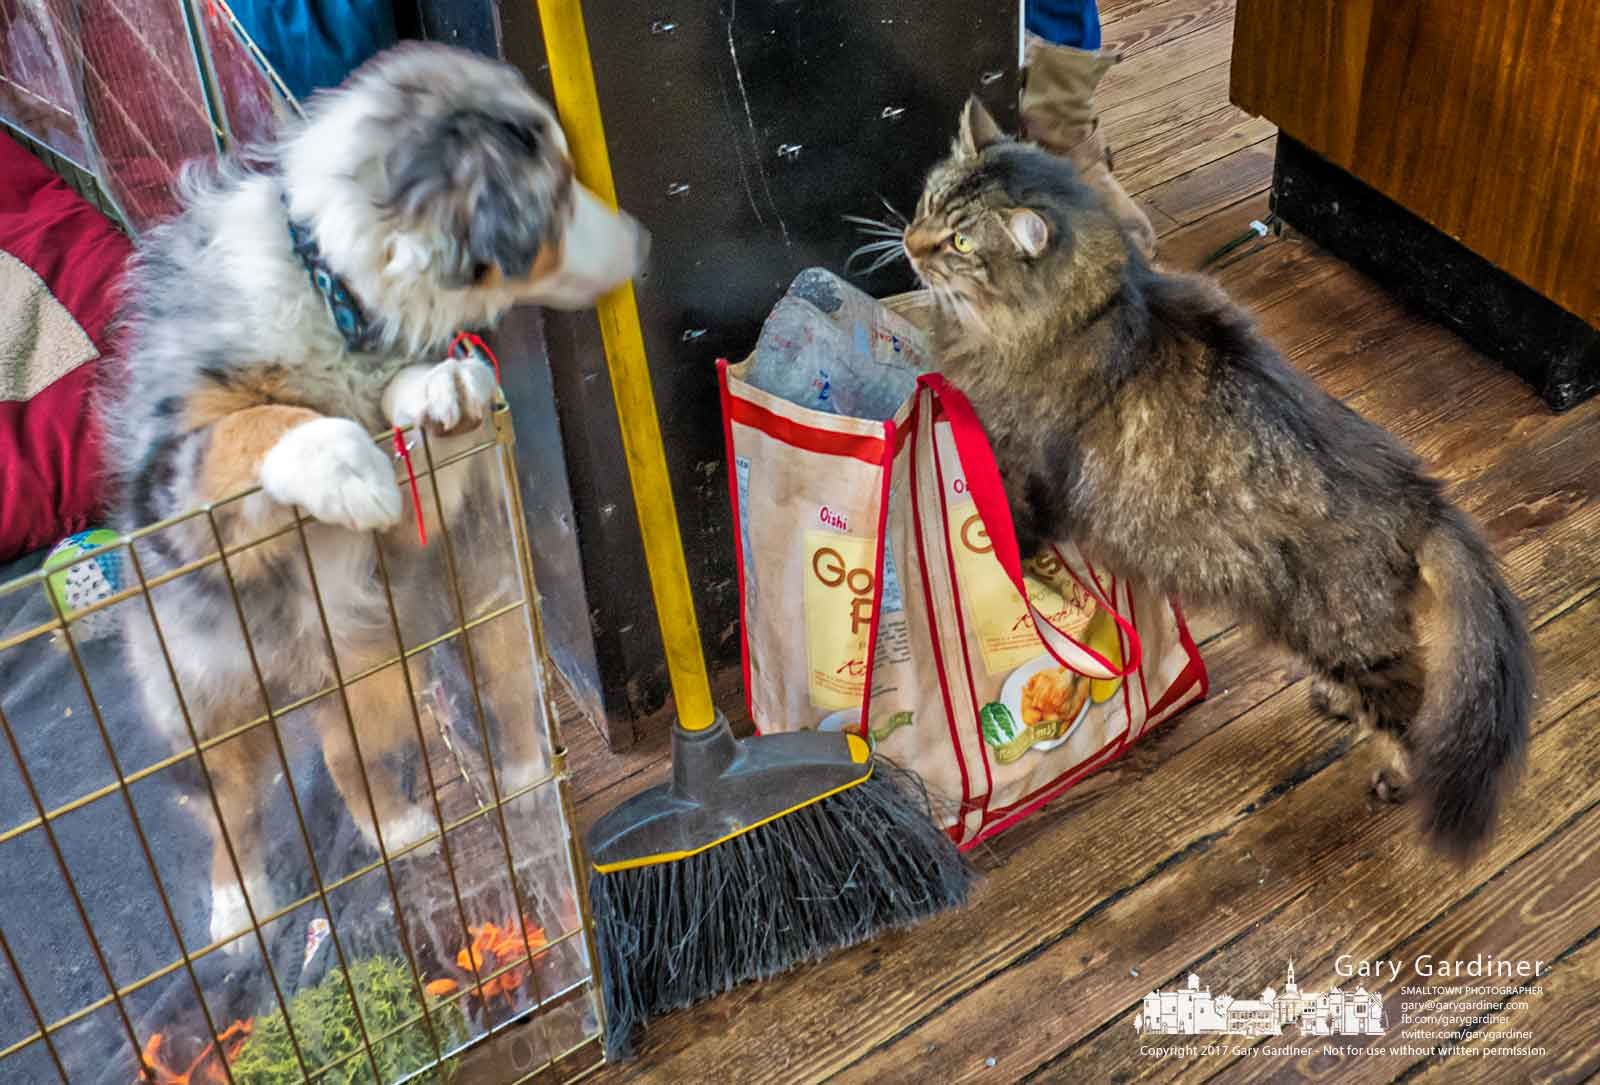 """Stinky,"" the resident cat at Westerville Antiques gets a close look at ""Jax"" the Aussie Shepherd pup of the new owners of the store on the first day they took over operation of the Uptown business. My Final Photo for Dec. 12, 2017."